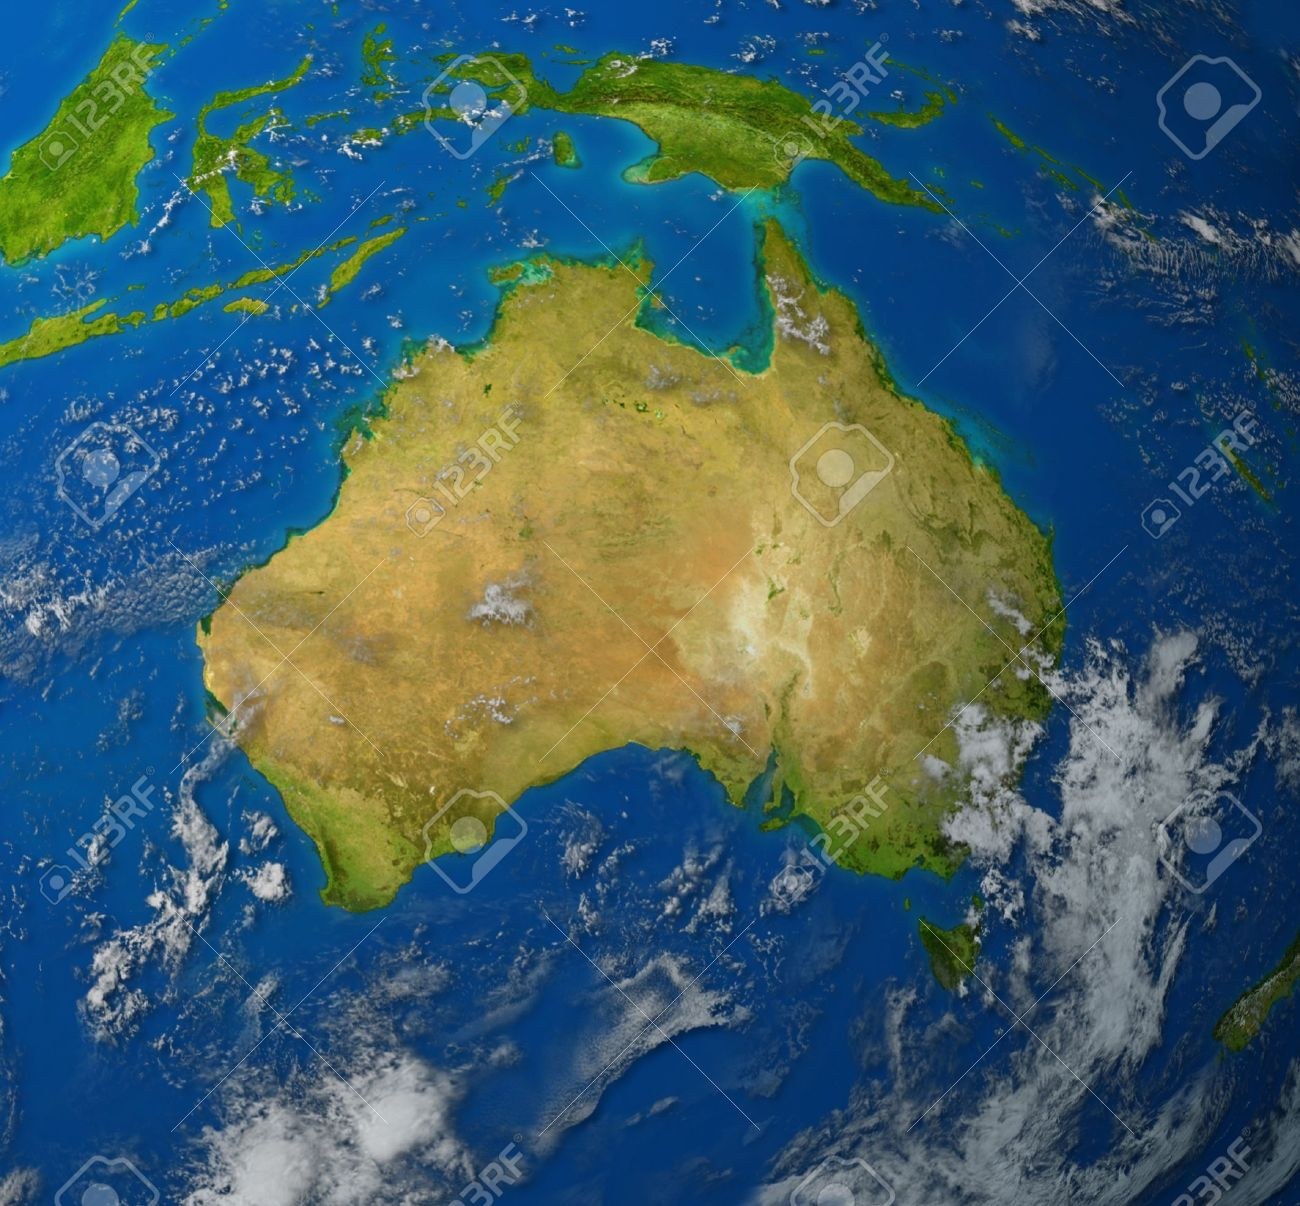 australia realistic map of the continent of oceana in the pacific region of asia representing the